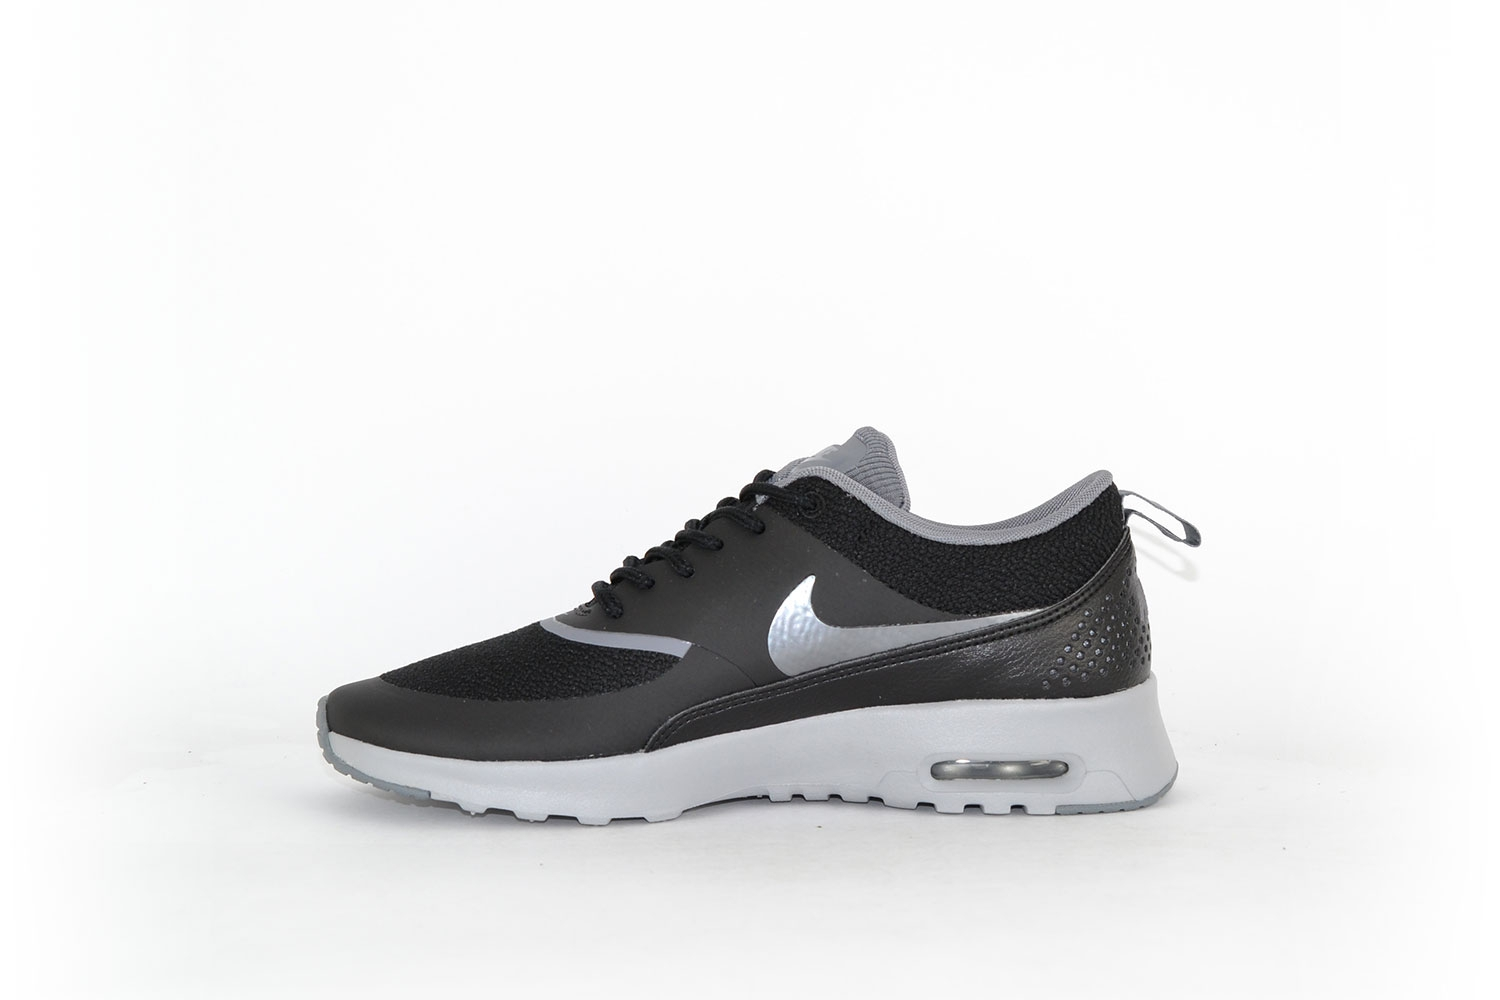 nike damen air max thea schwarz grau f low s dein. Black Bedroom Furniture Sets. Home Design Ideas